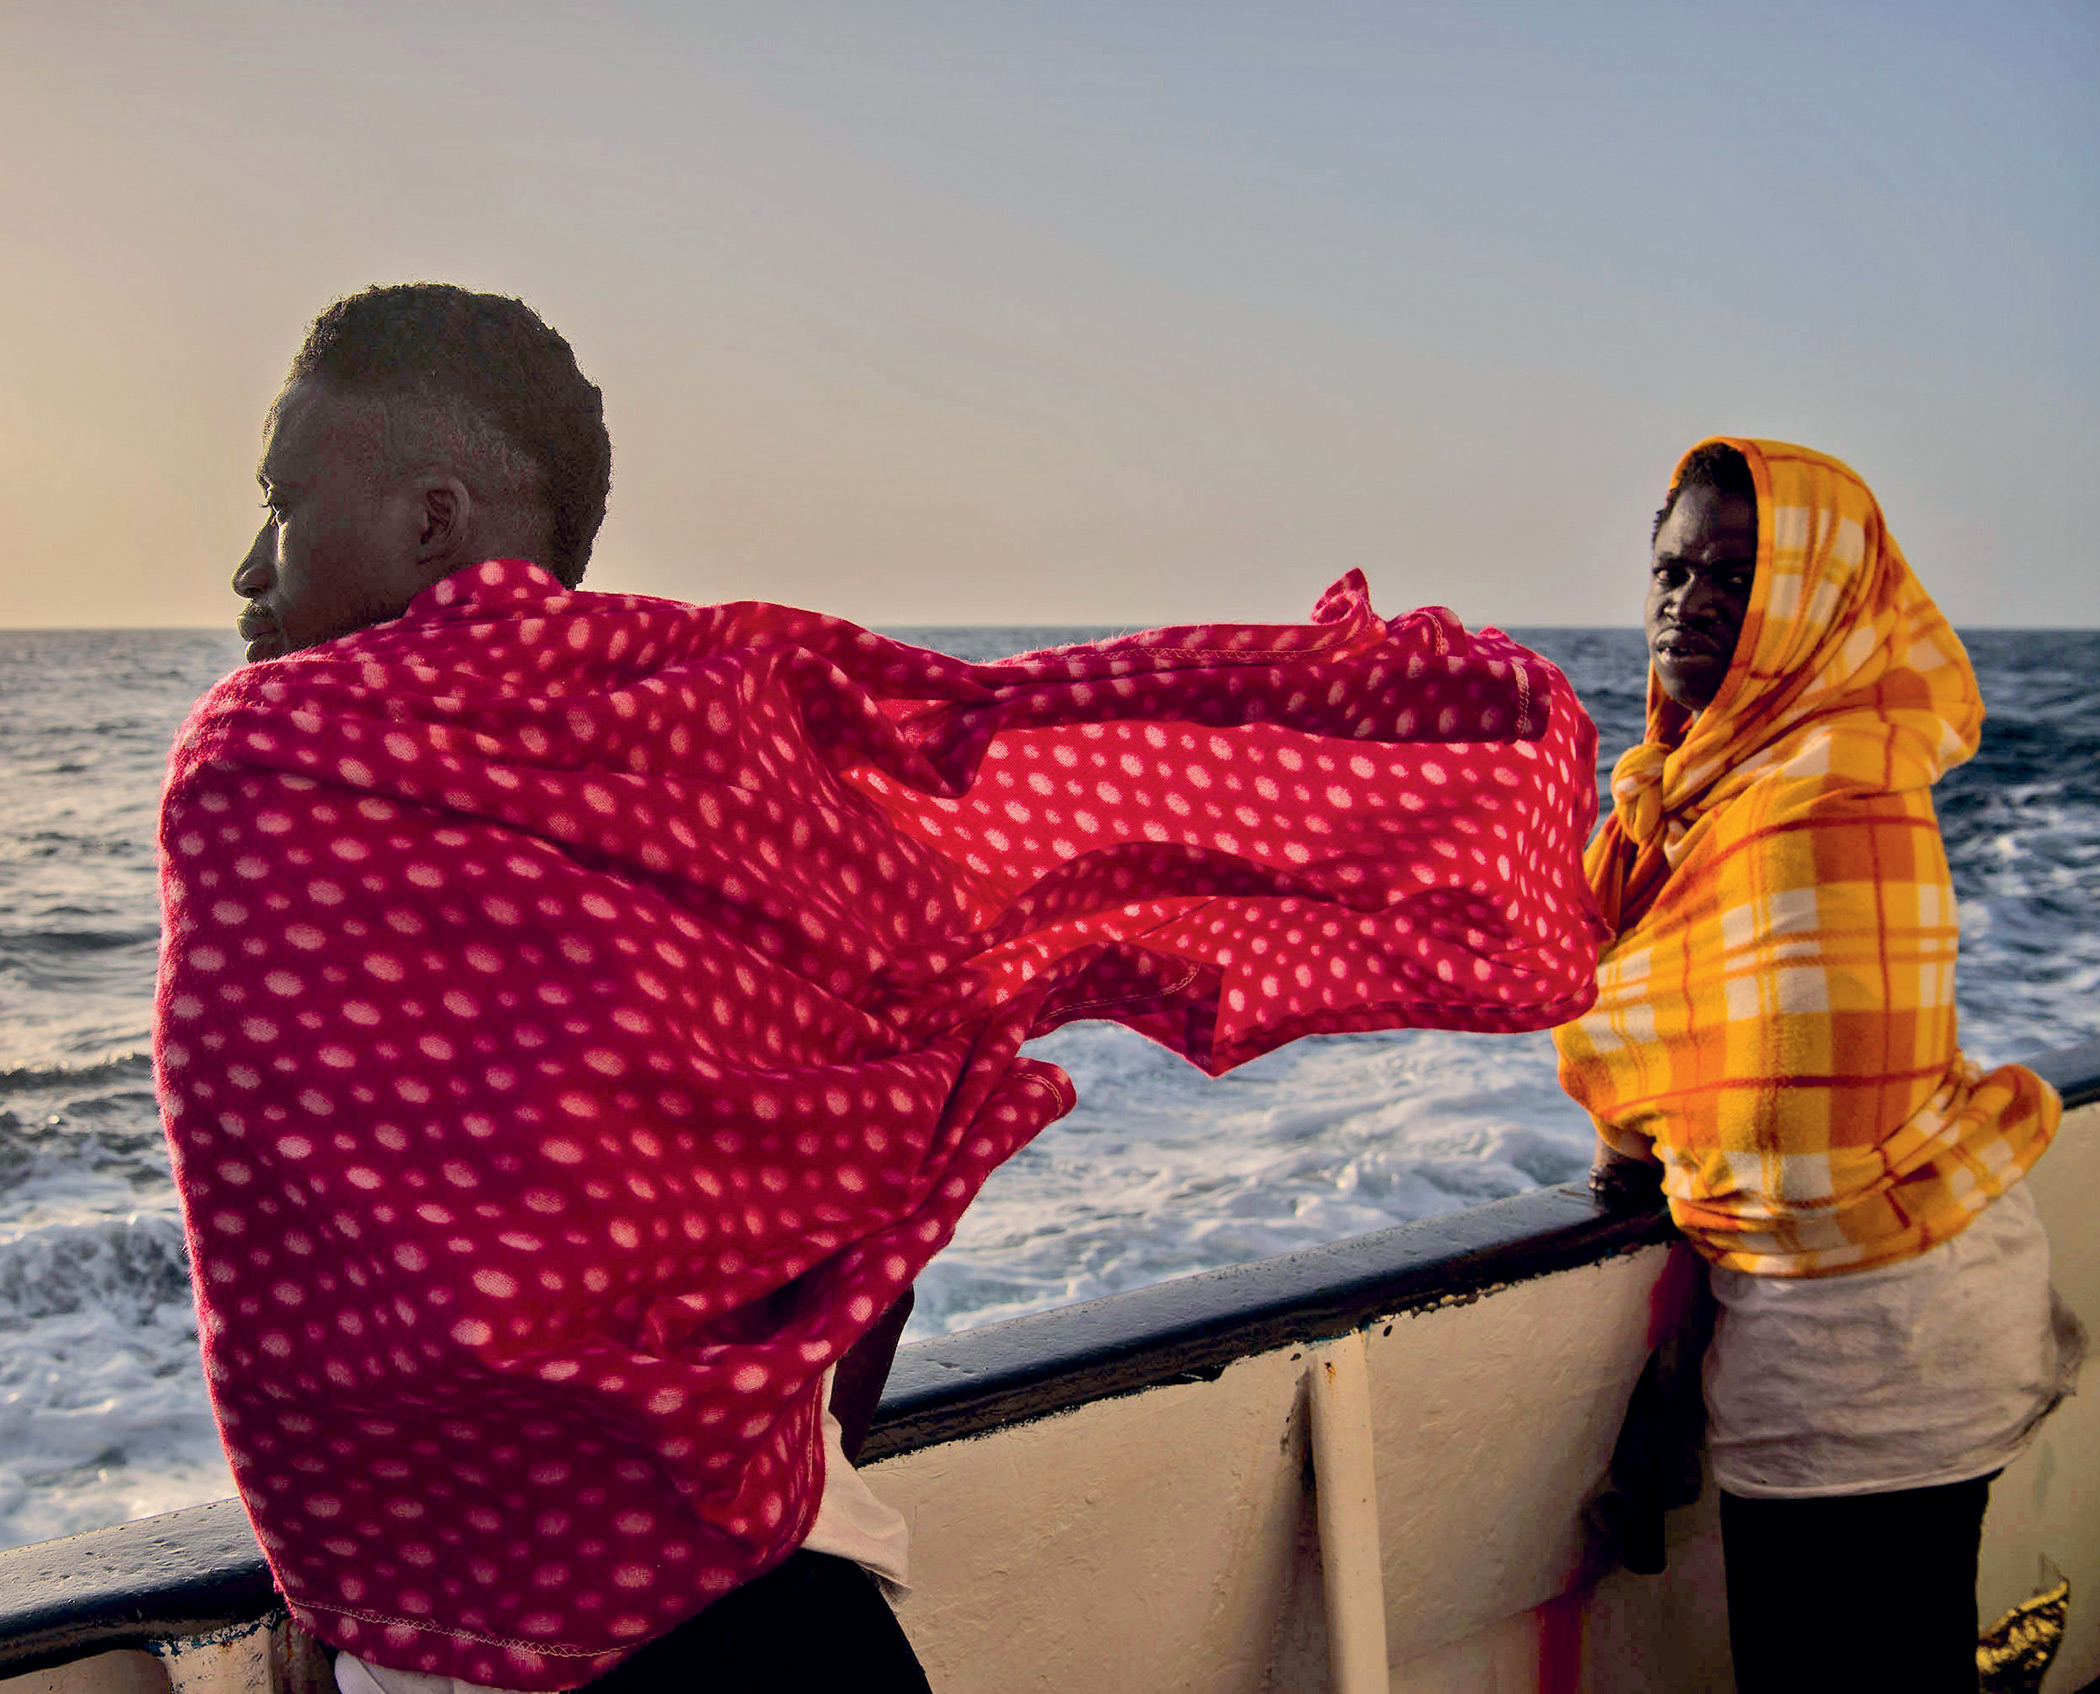 Europe-bound. Migrant travellers from Togo en route to Italy after being rescued by Spanish rescue NGO Open Arms, February 2017.